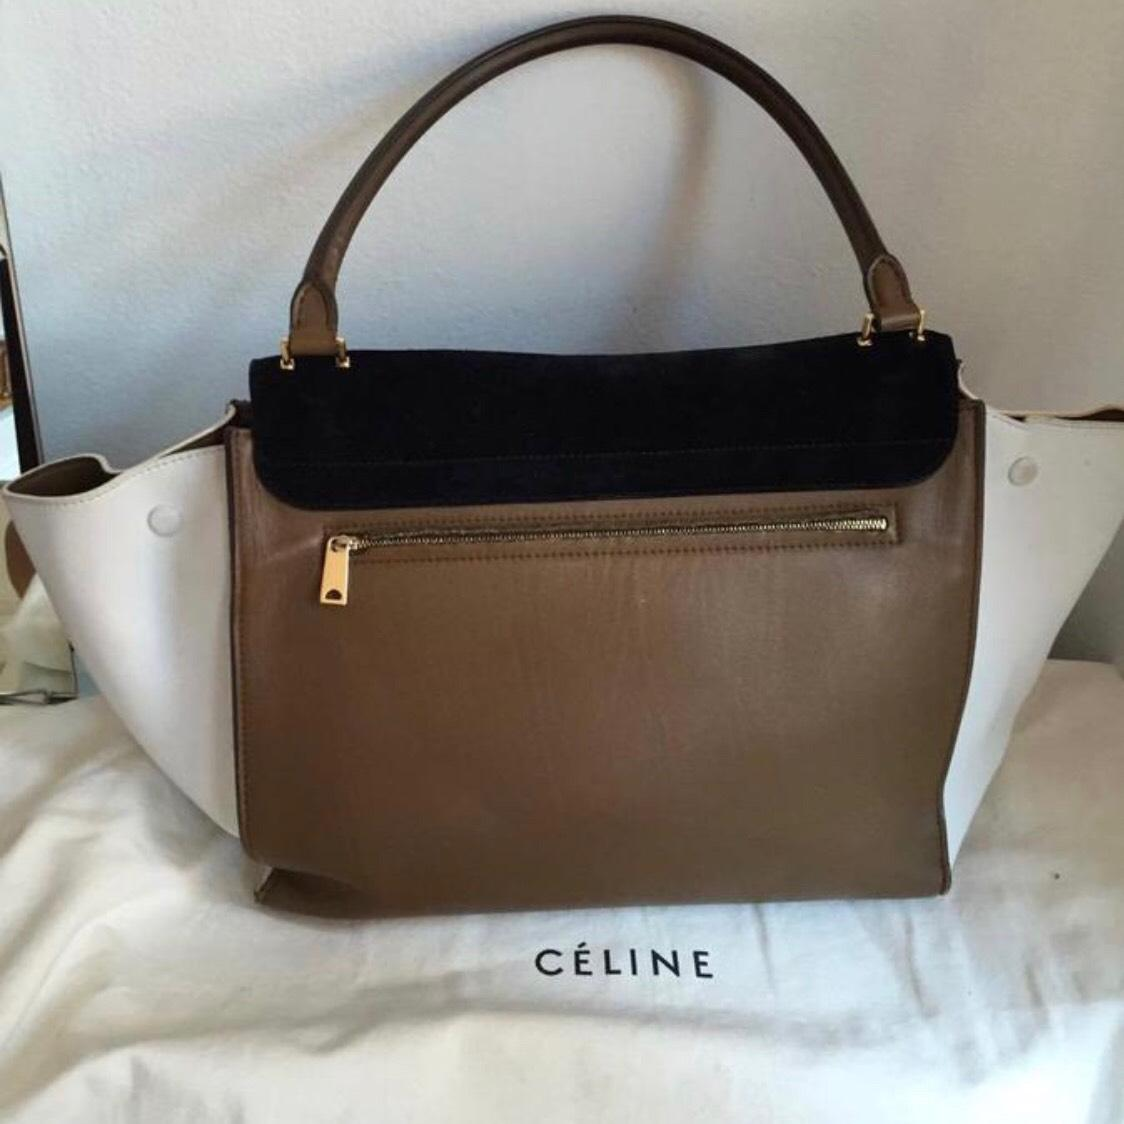 01119a6c0c2e Celine Hobo Medium Replica handbag prices 2014 celine luggage little  classic celine bag pre owned celine bag,cheap celine handbags celine  handbags spring ...